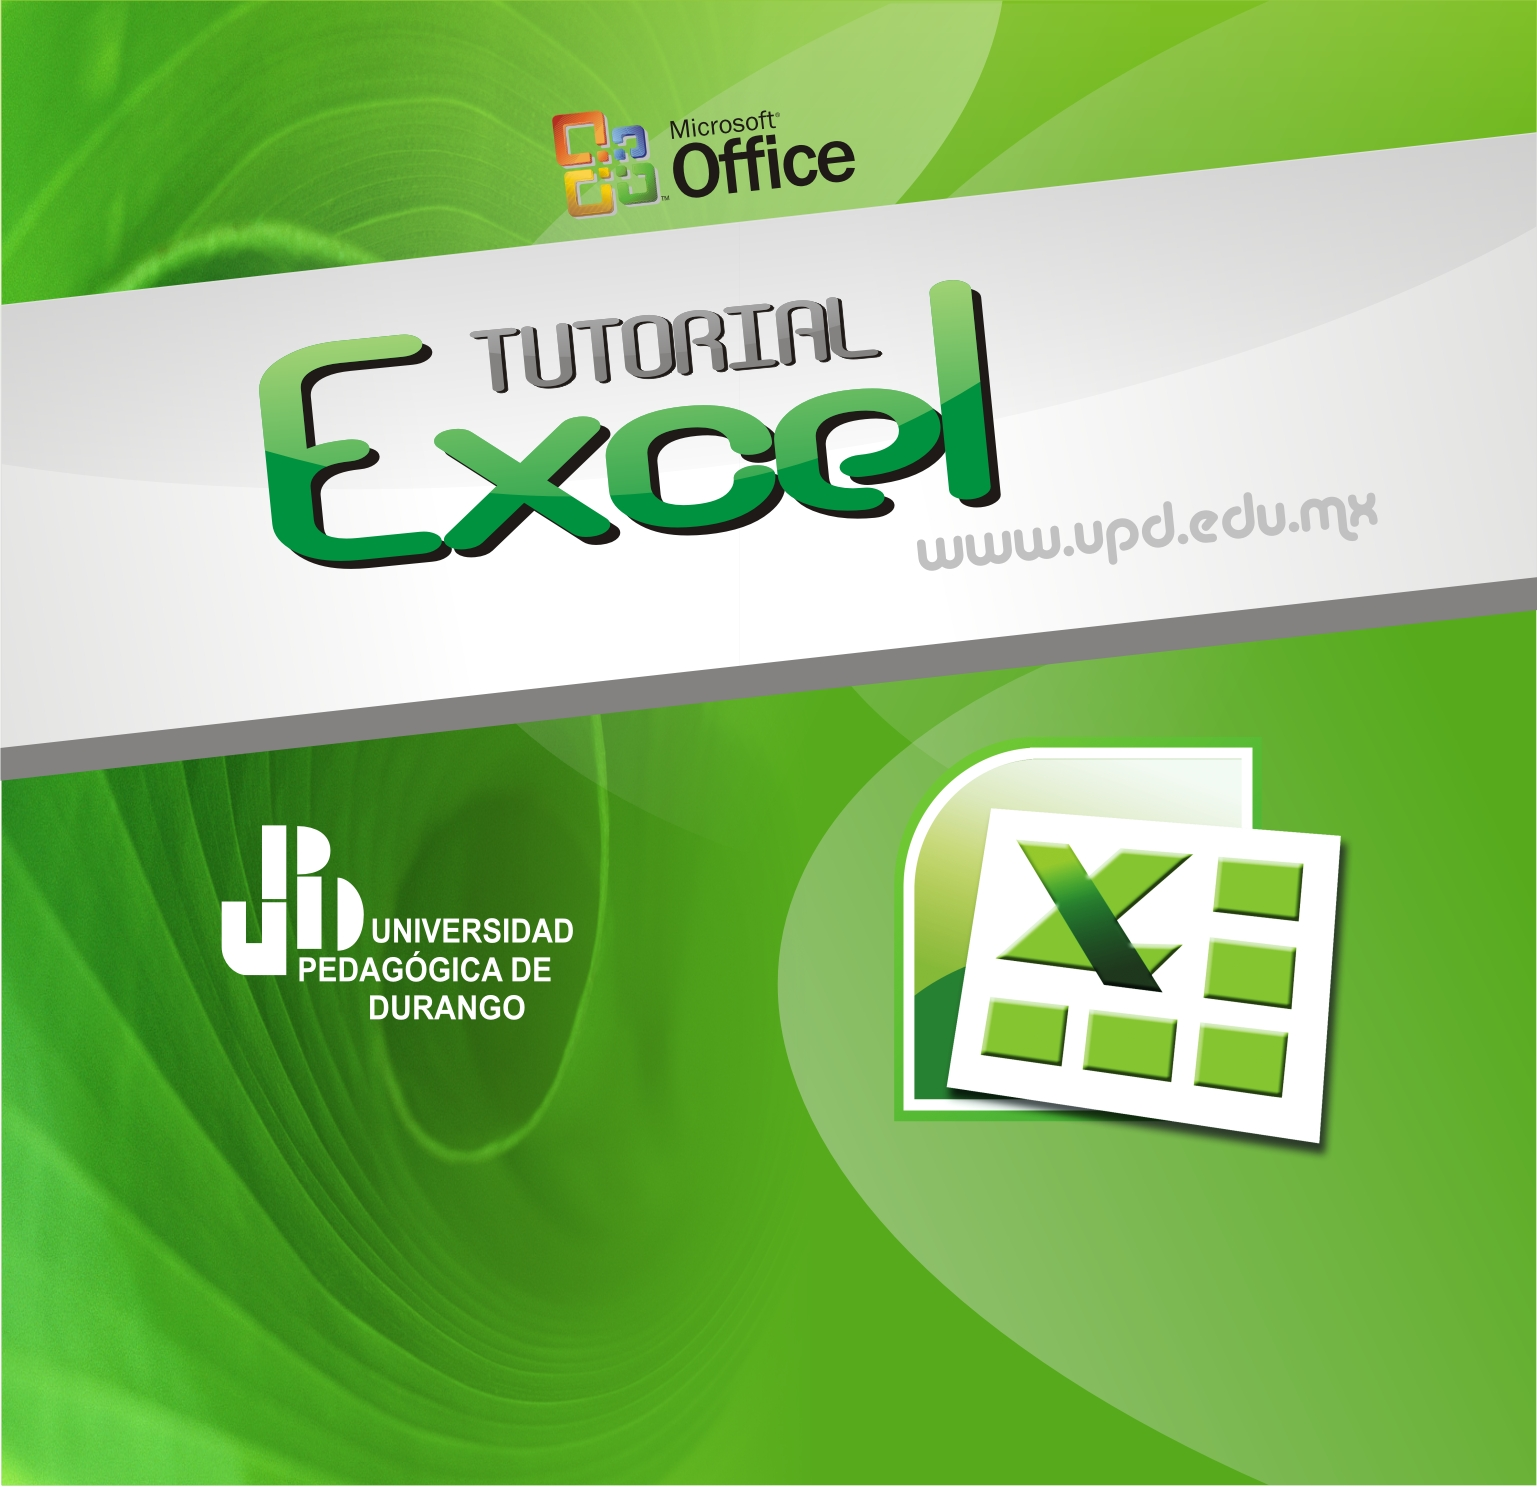 Ediblewildsus  Personable The Basics Of Iwork Number For Ms Excel Users  Radical Hub With Interesting Tutorexcel With Delightful Plus Symbol In Excel Also Online Convert Pdf To Excel  In Addition Online Excel To Vcard Converter And Pretty Excel Charts As Well As How To Do Regression Analysis In Excel Additionally Ms Excel Advanced Formulas With Examples From Radicalhubcom With Ediblewildsus  Interesting The Basics Of Iwork Number For Ms Excel Users  Radical Hub With Delightful Tutorexcel And Personable Plus Symbol In Excel Also Online Convert Pdf To Excel  In Addition Online Excel To Vcard Converter From Radicalhubcom